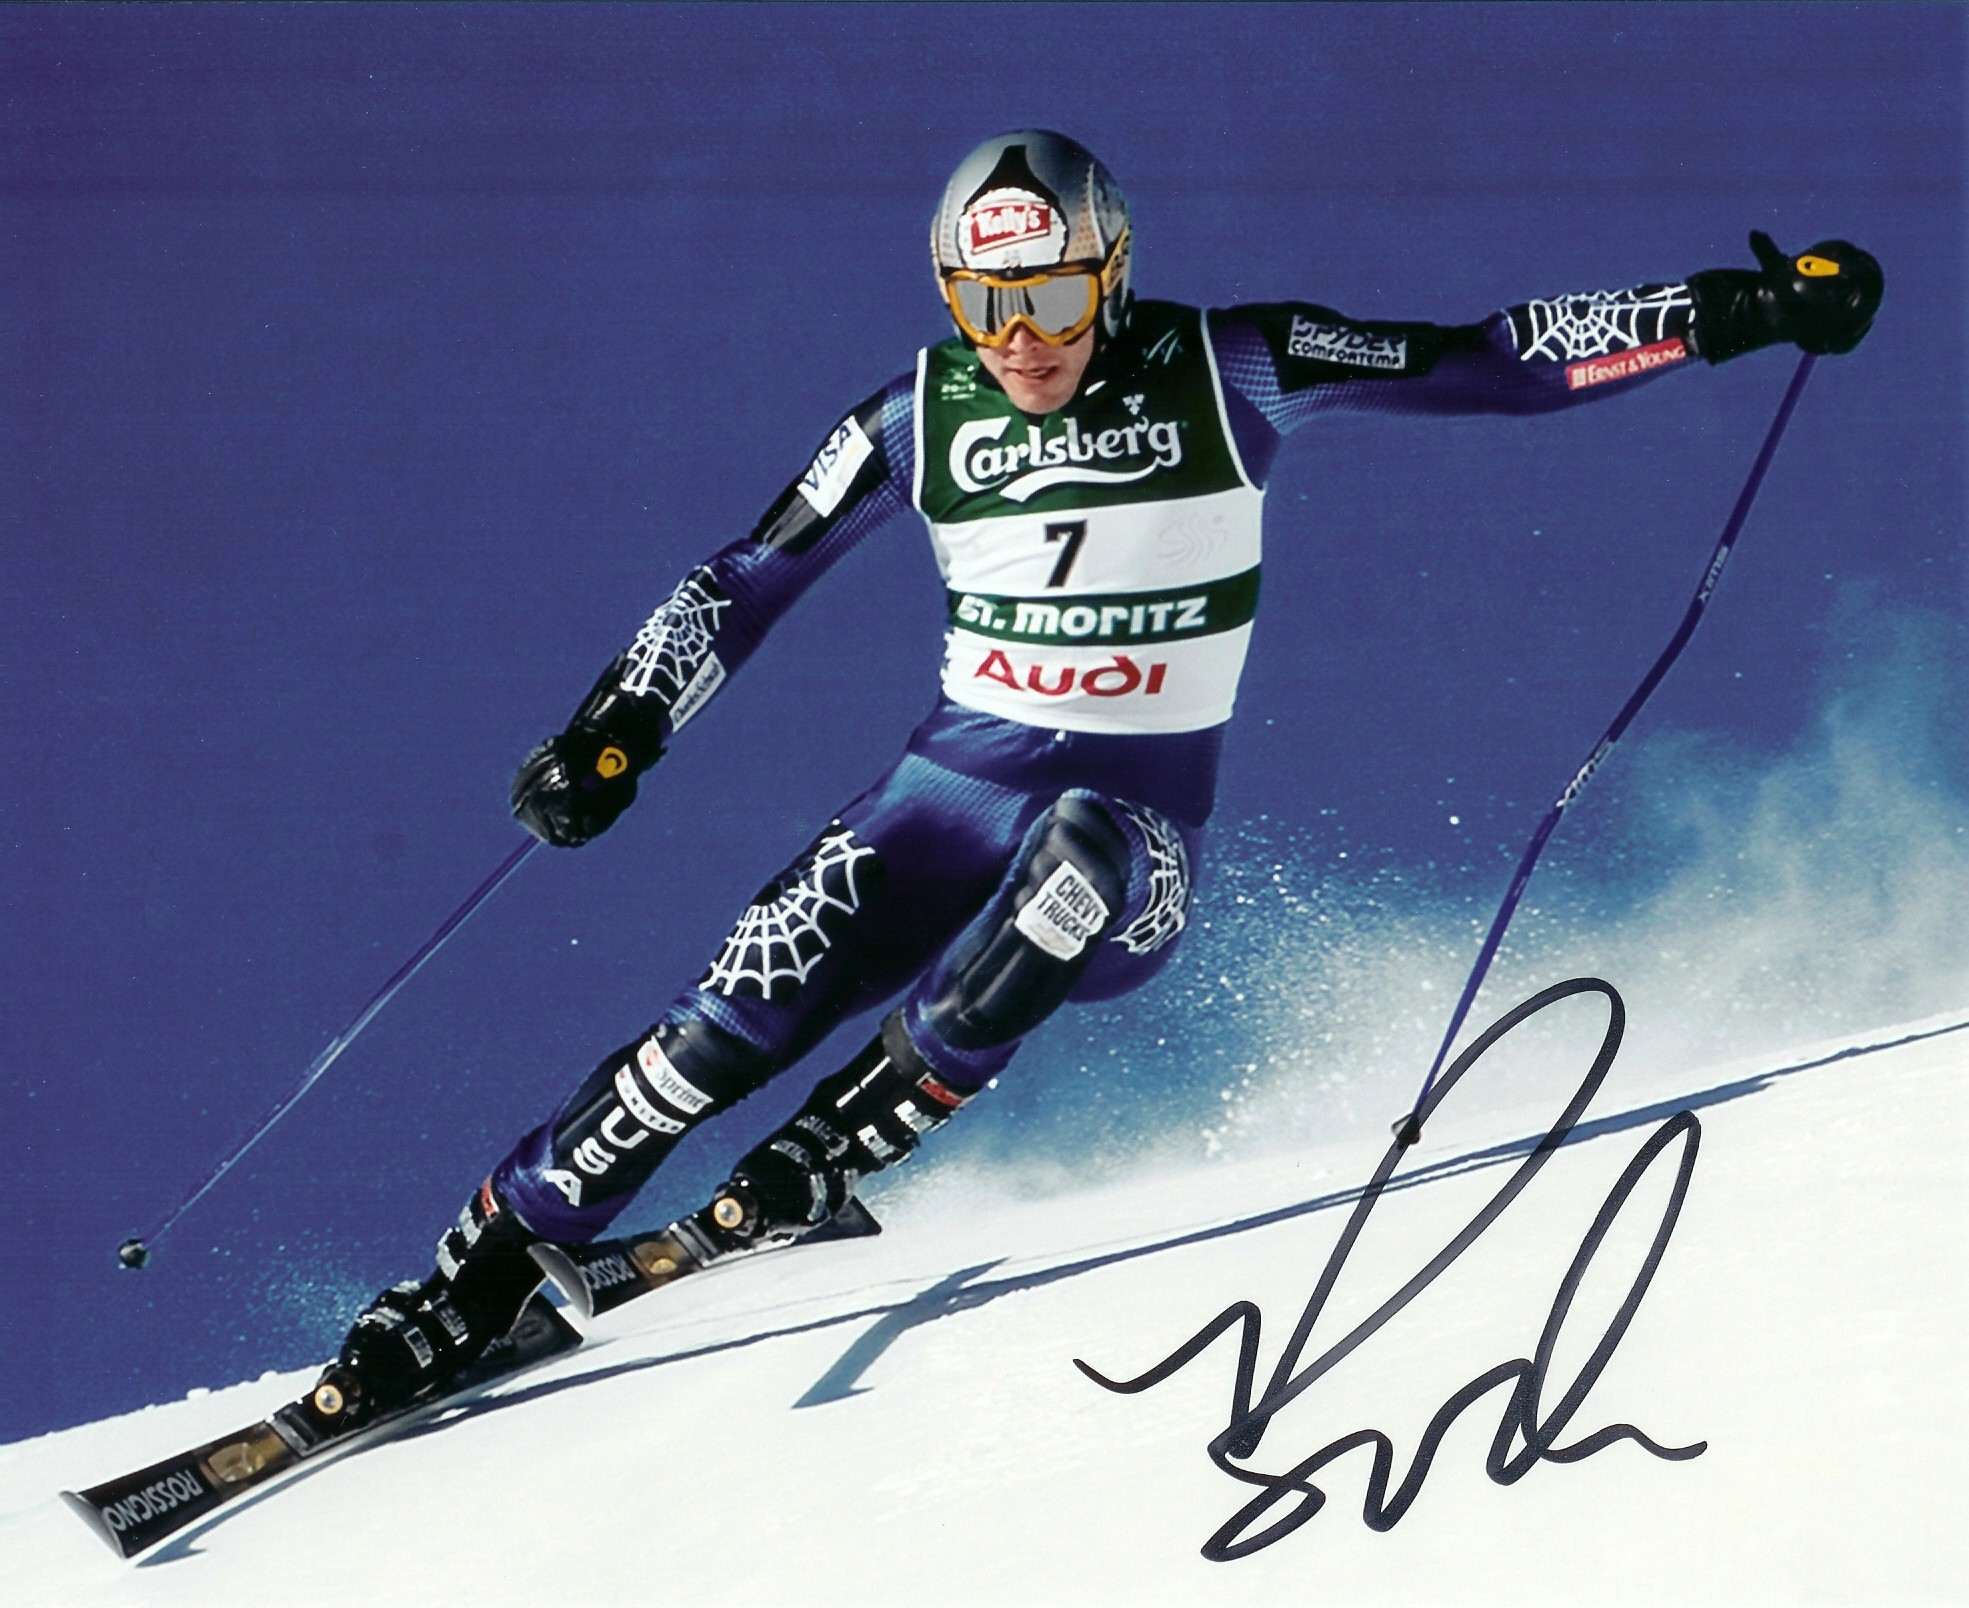 Autographed Bode Miller USA